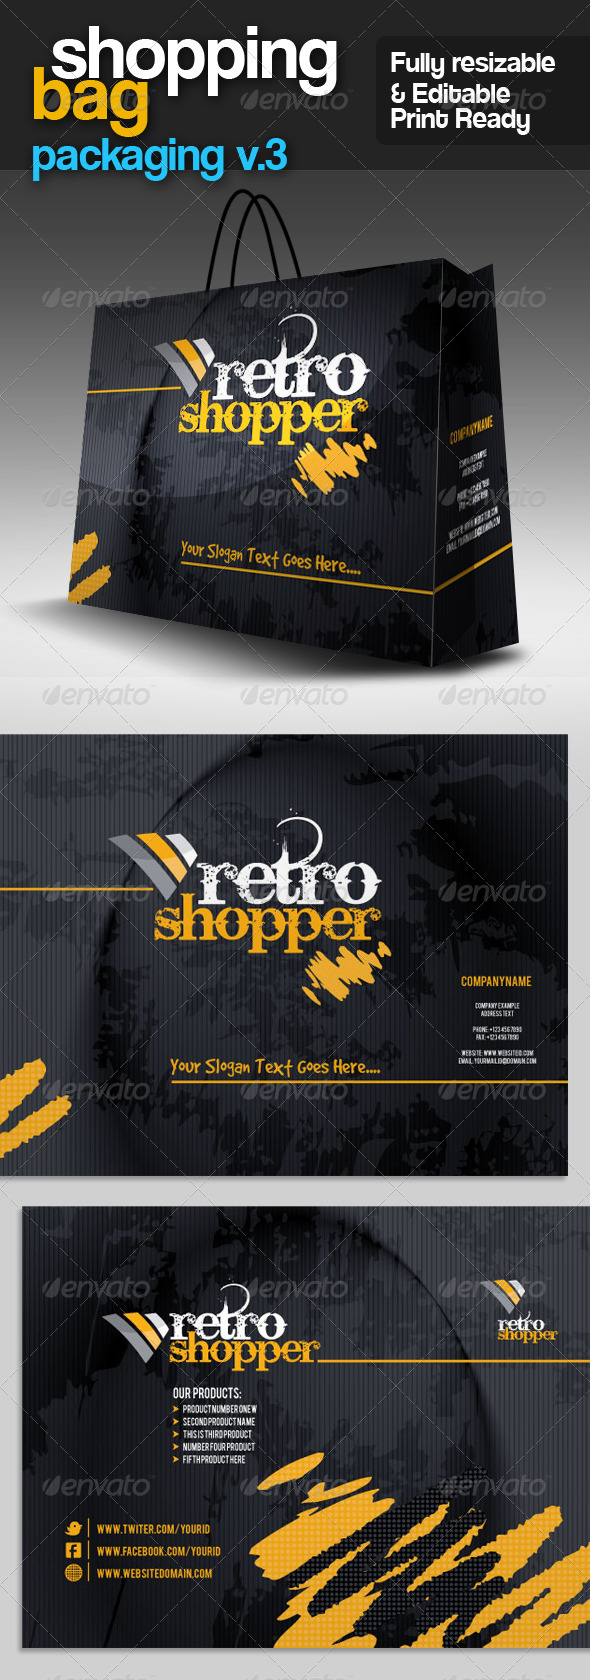 GA Shopping Bag Packaging v.3 - Packaging Print Templates